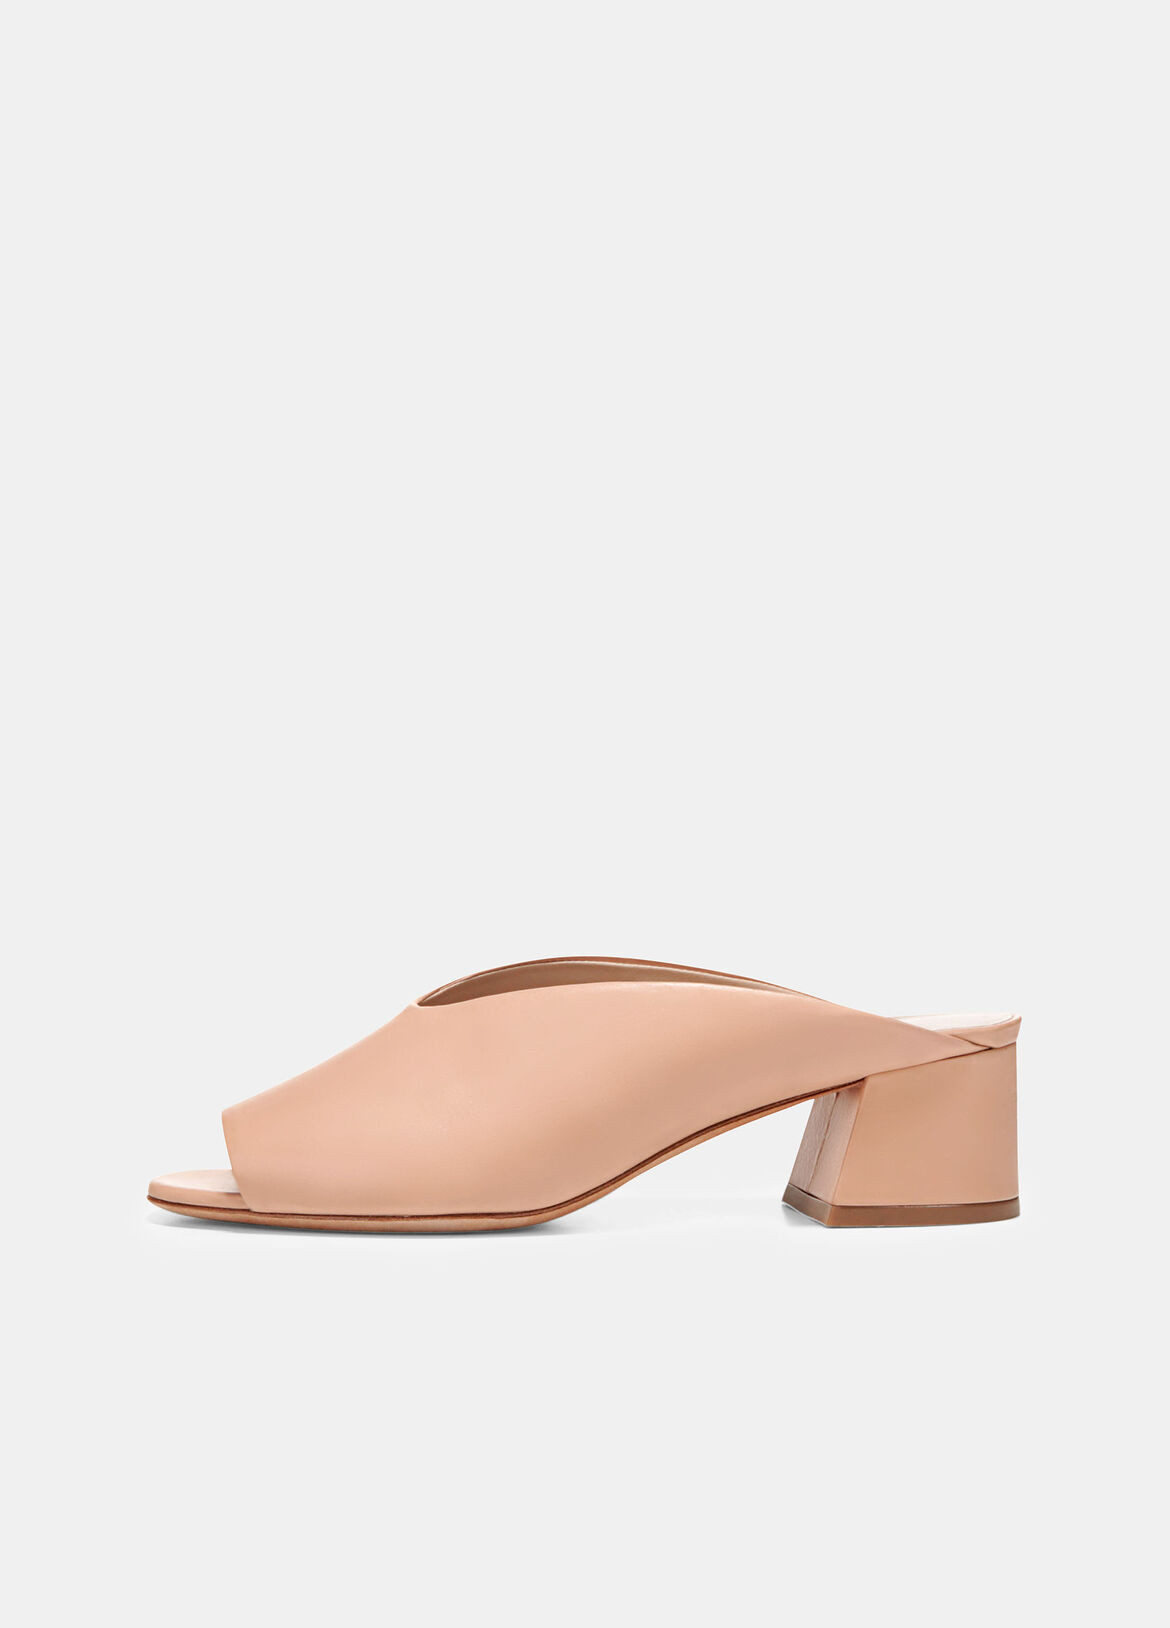 The Cachet slides have a sleek, modern silhouette in smooth leather. They're set on slanted block heels and are finished with a round open toe.